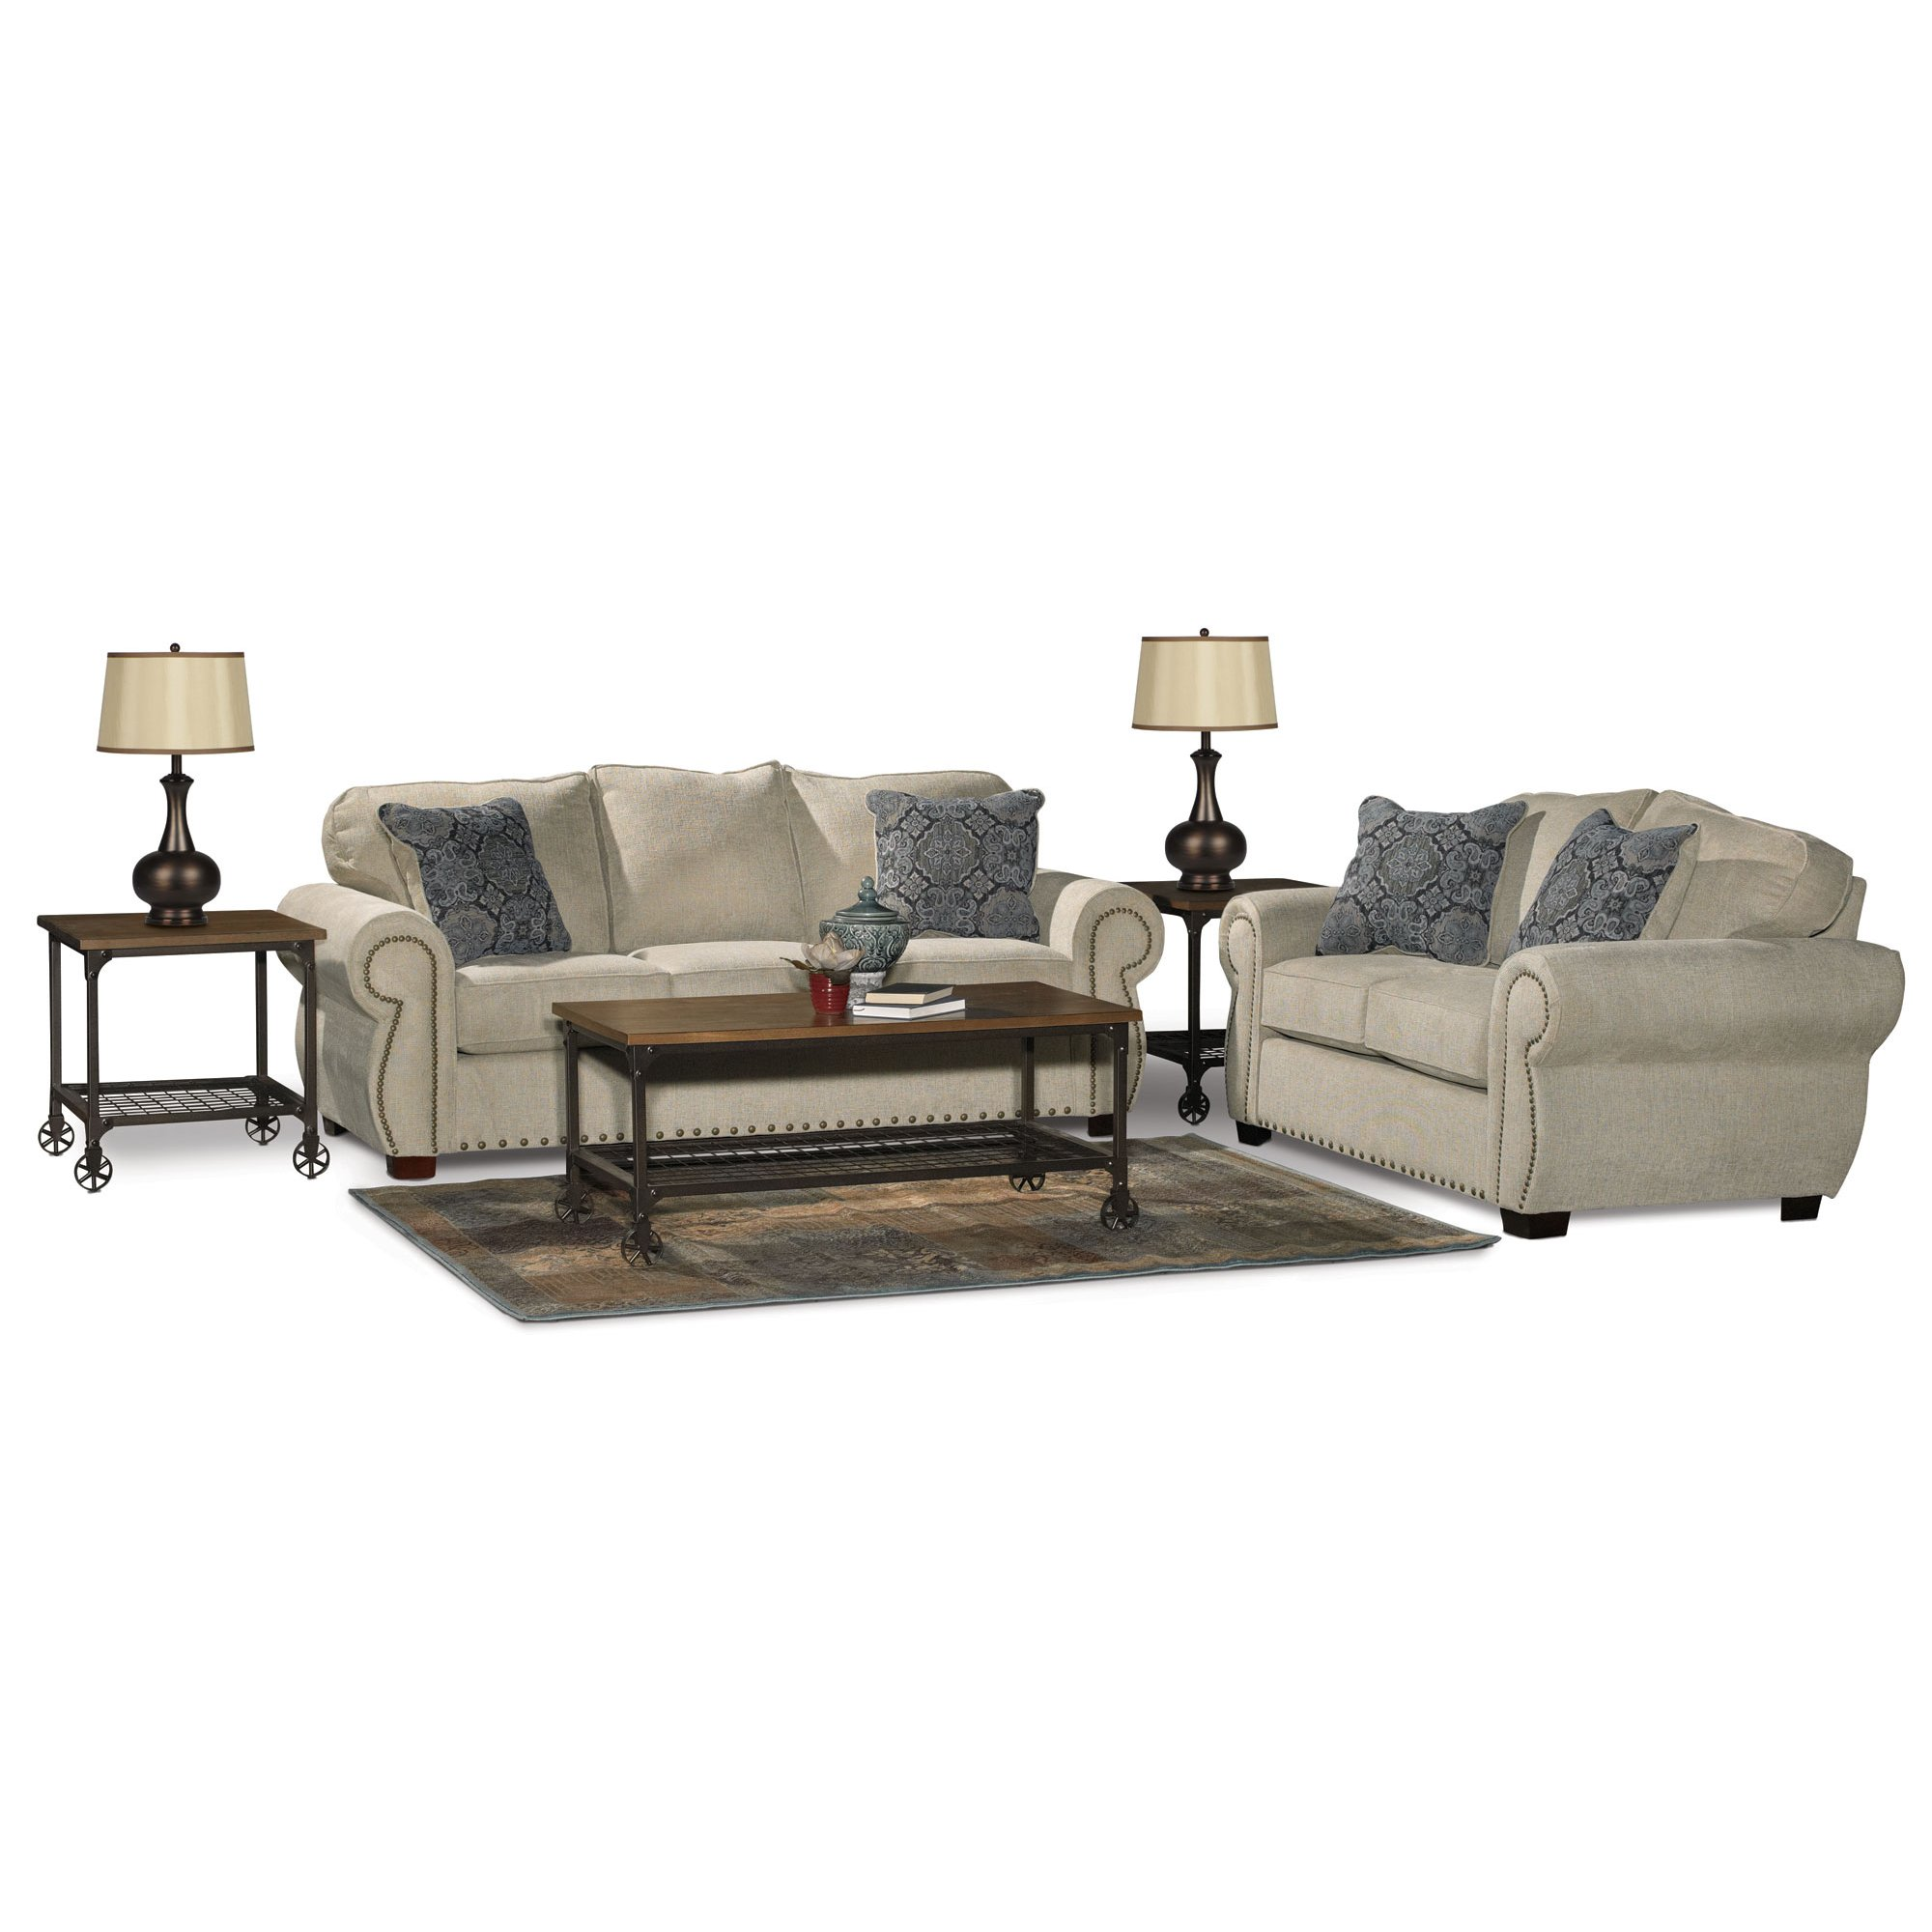 Traditional Canvas Tan Sofa Bed 7 Piece Living Room Set